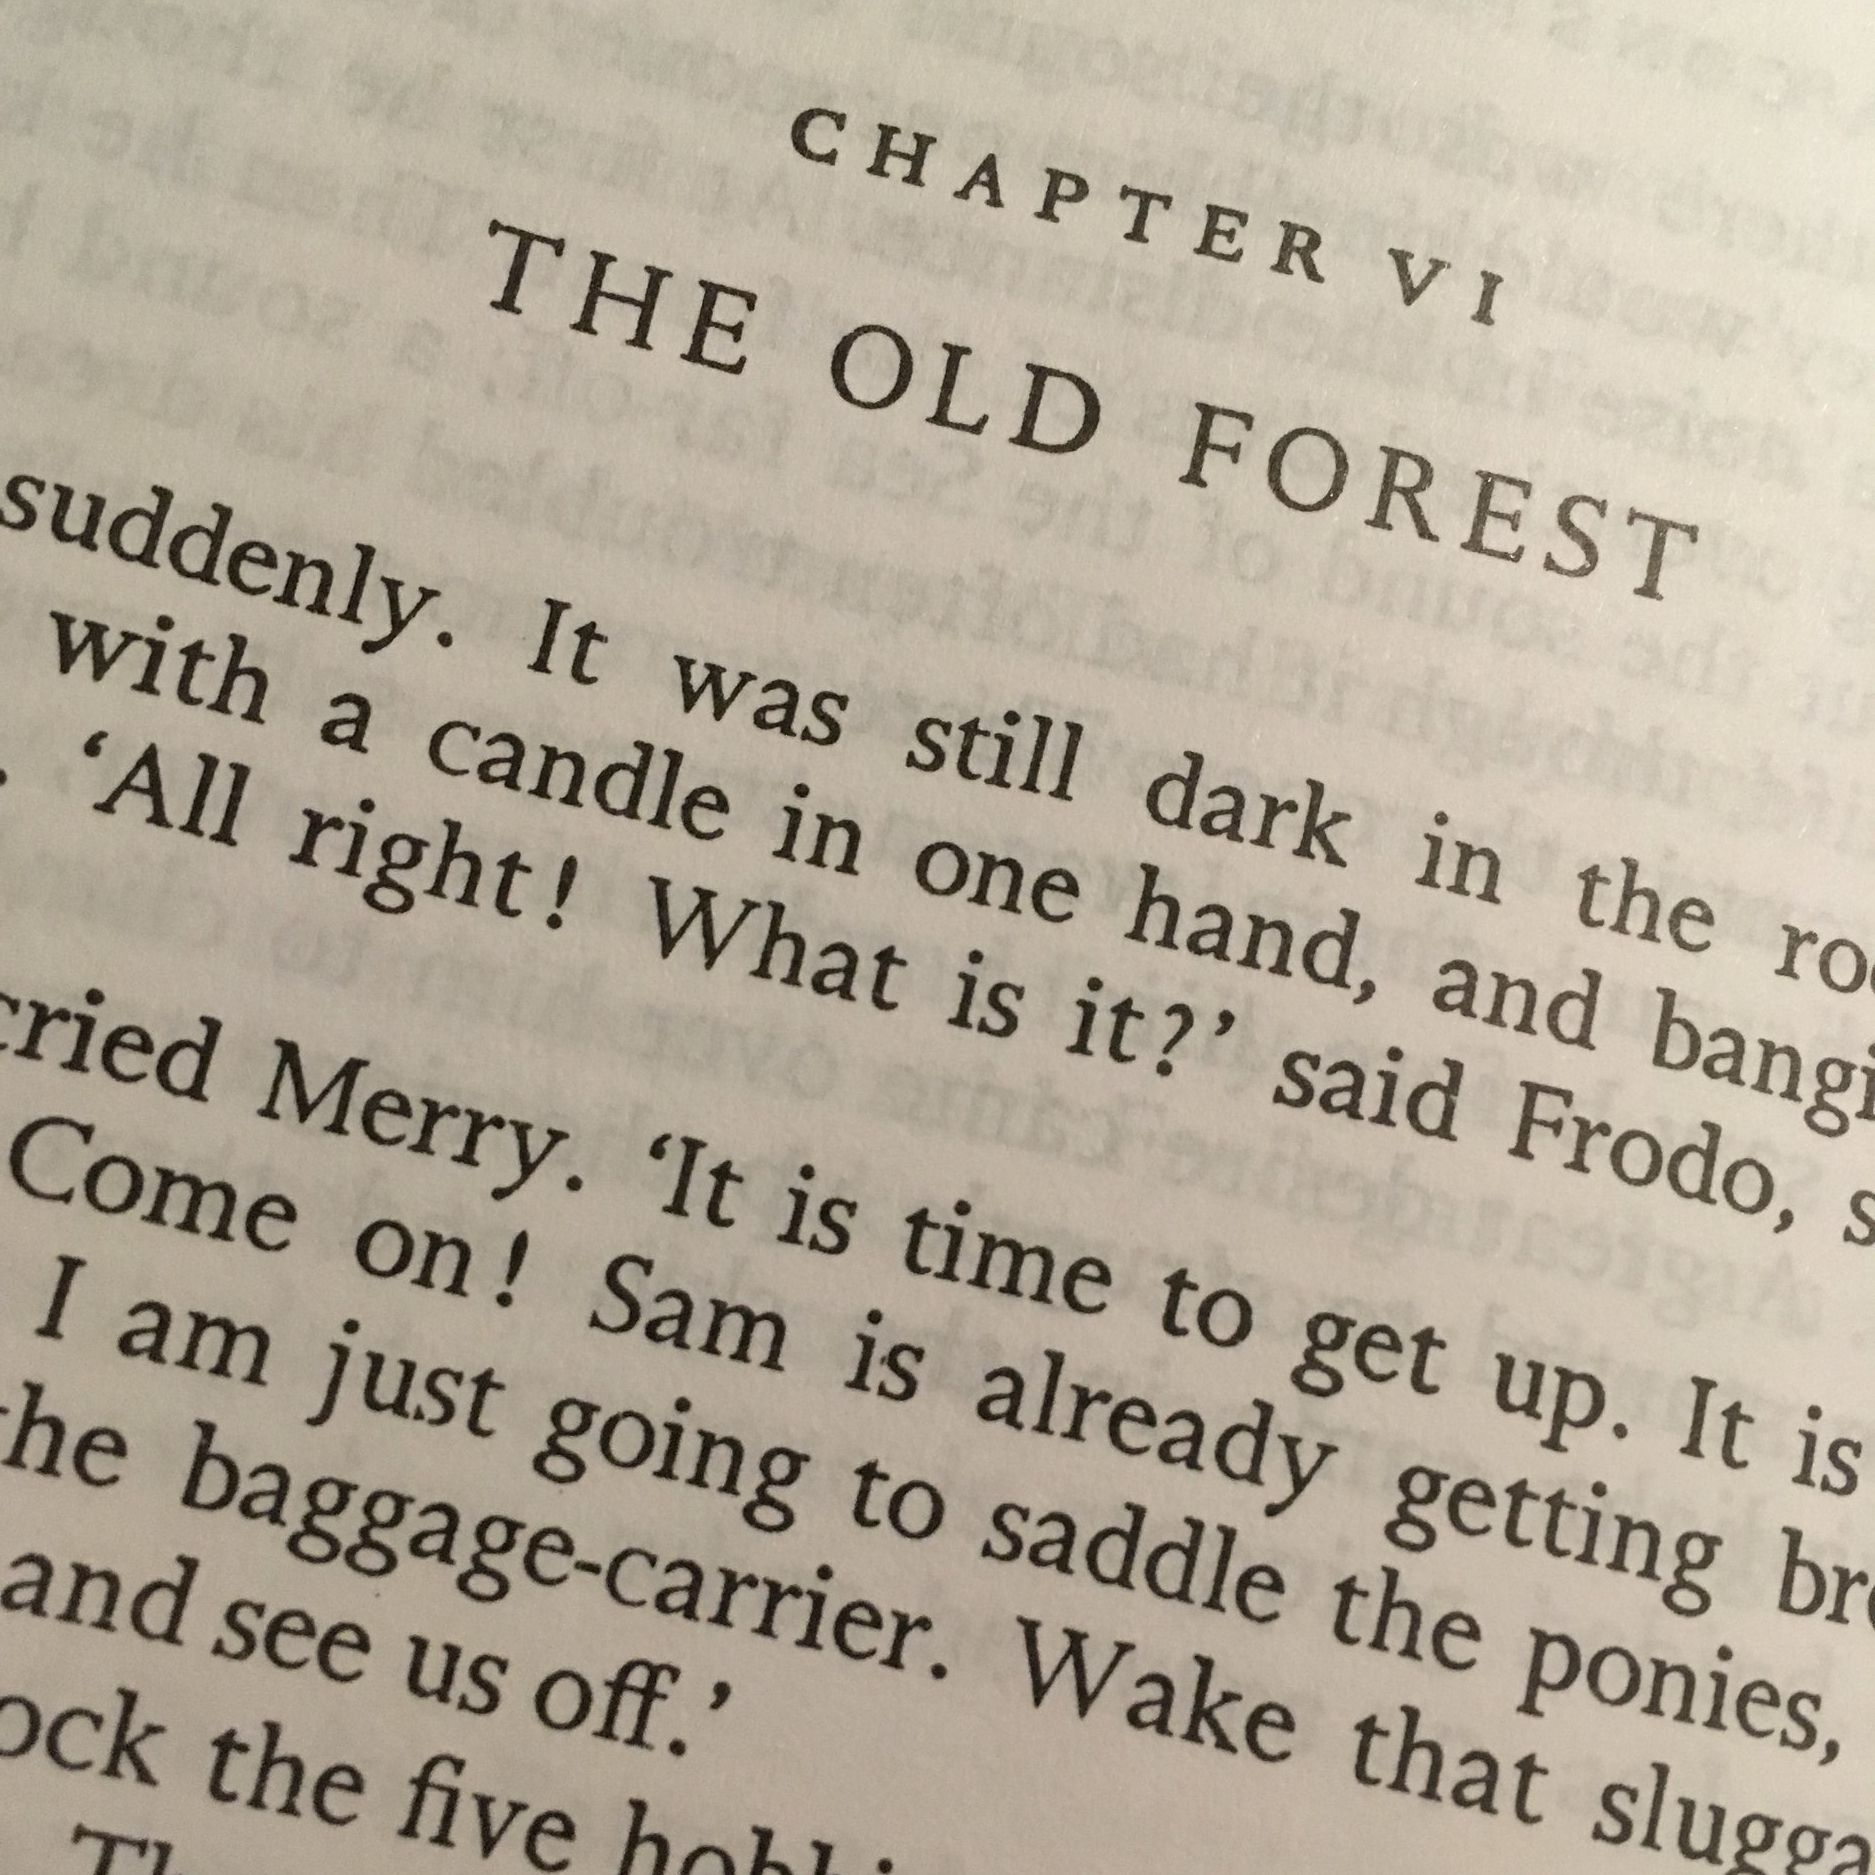 The Fellowship of The Ring: The Old Forest